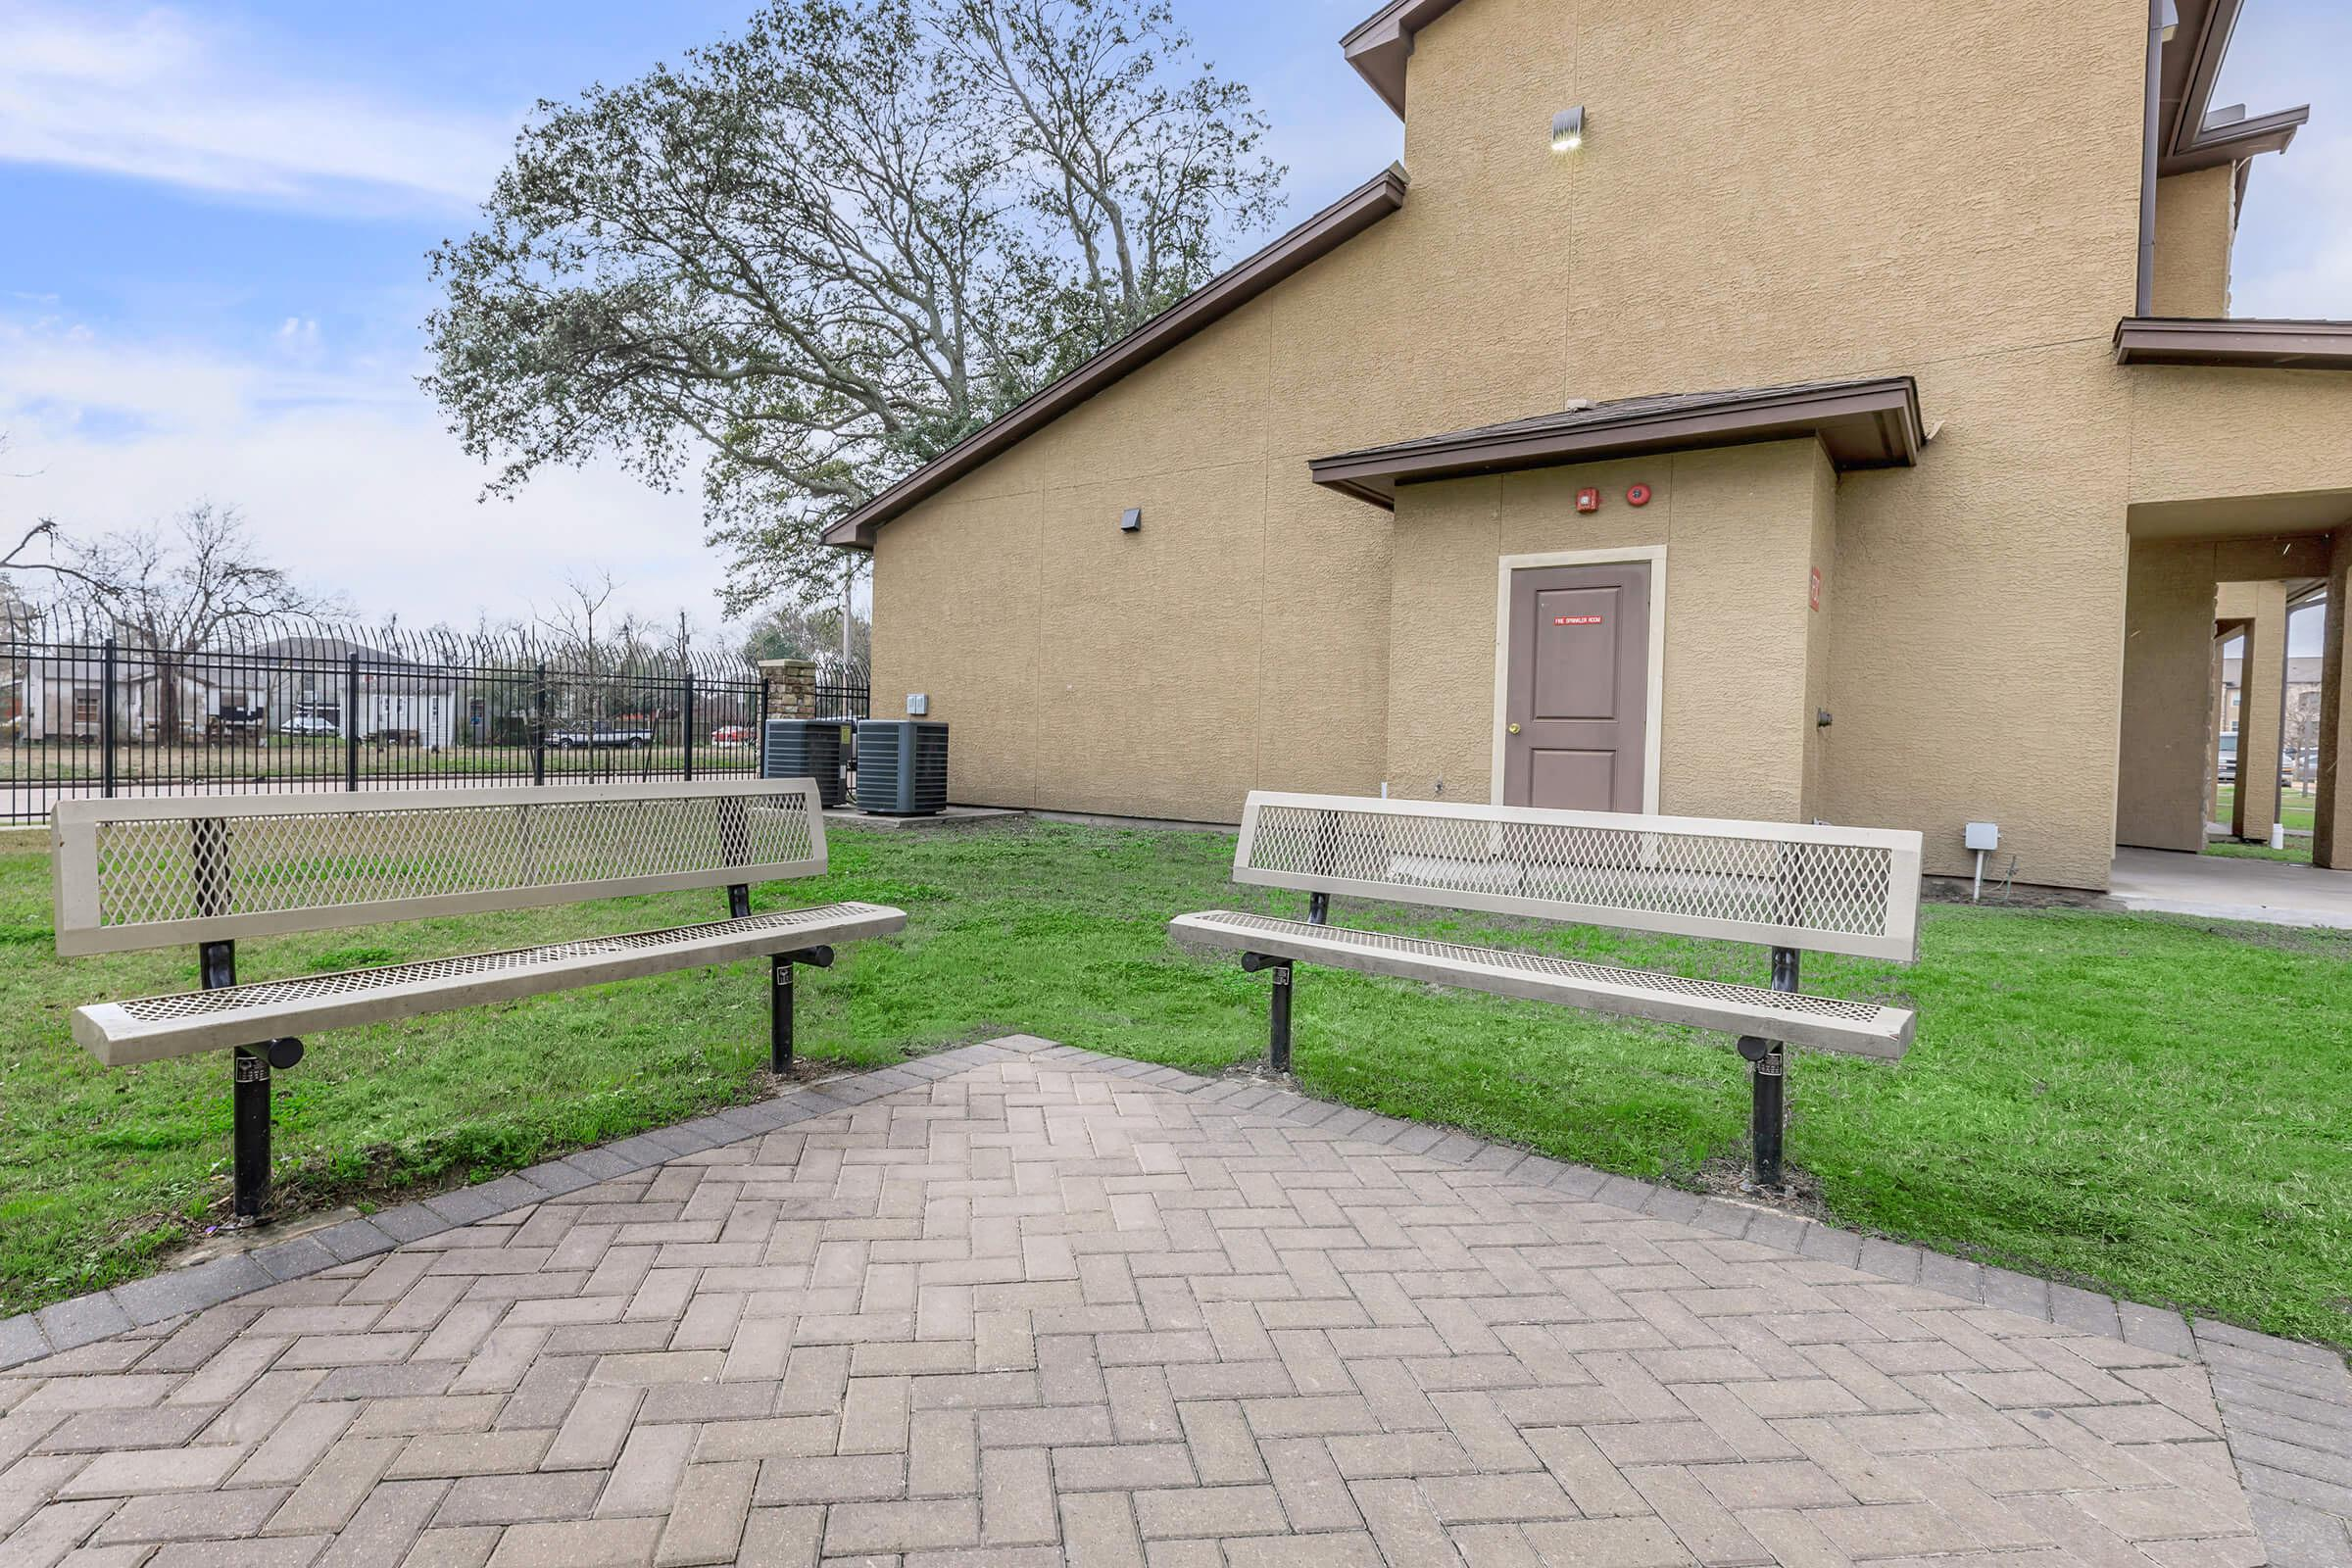 a bench in front of a brick building